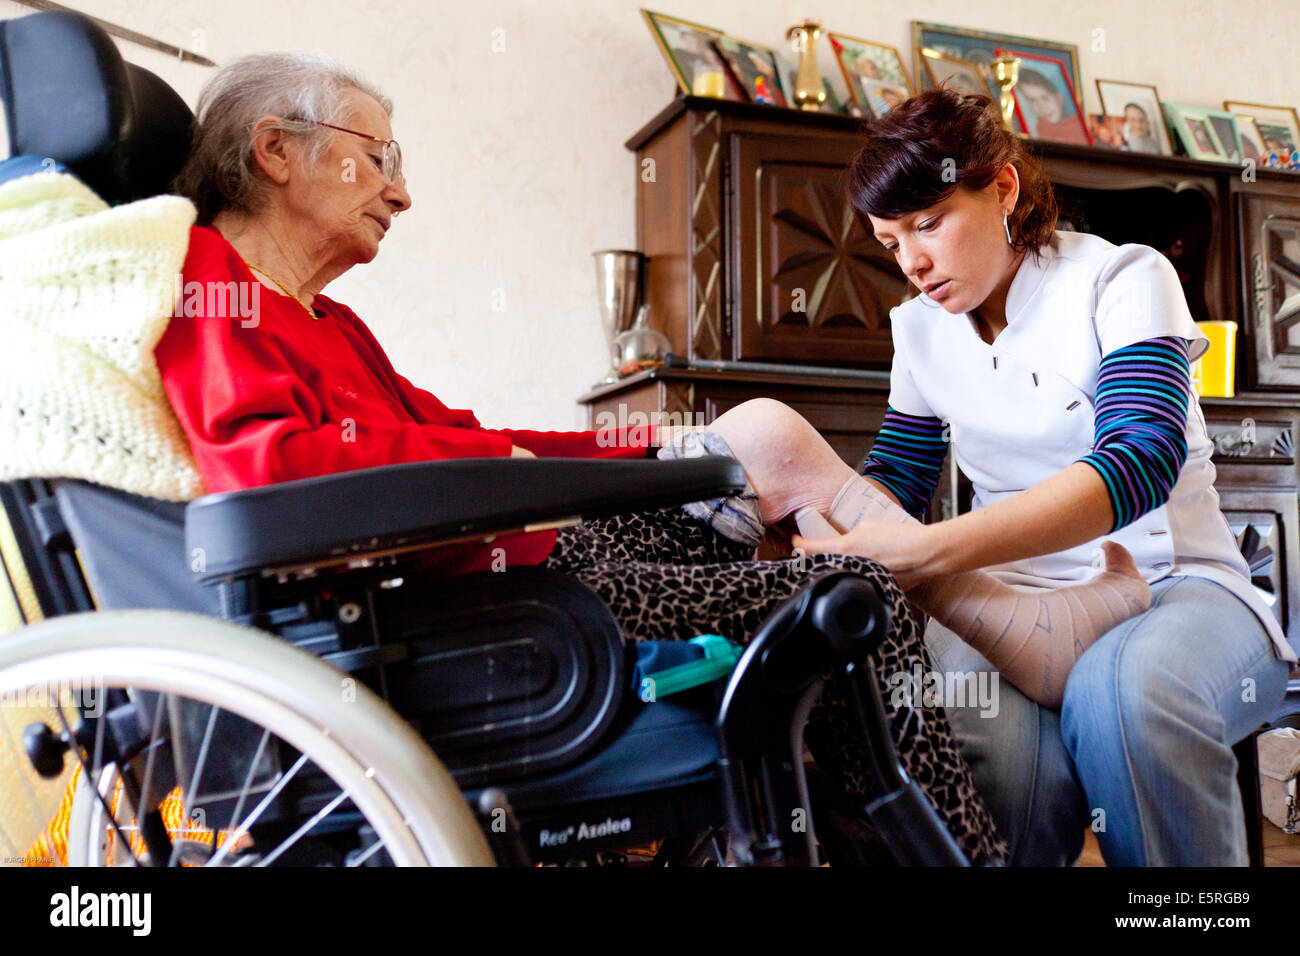 physiotherapy session at the home of an elderly woman with a stock